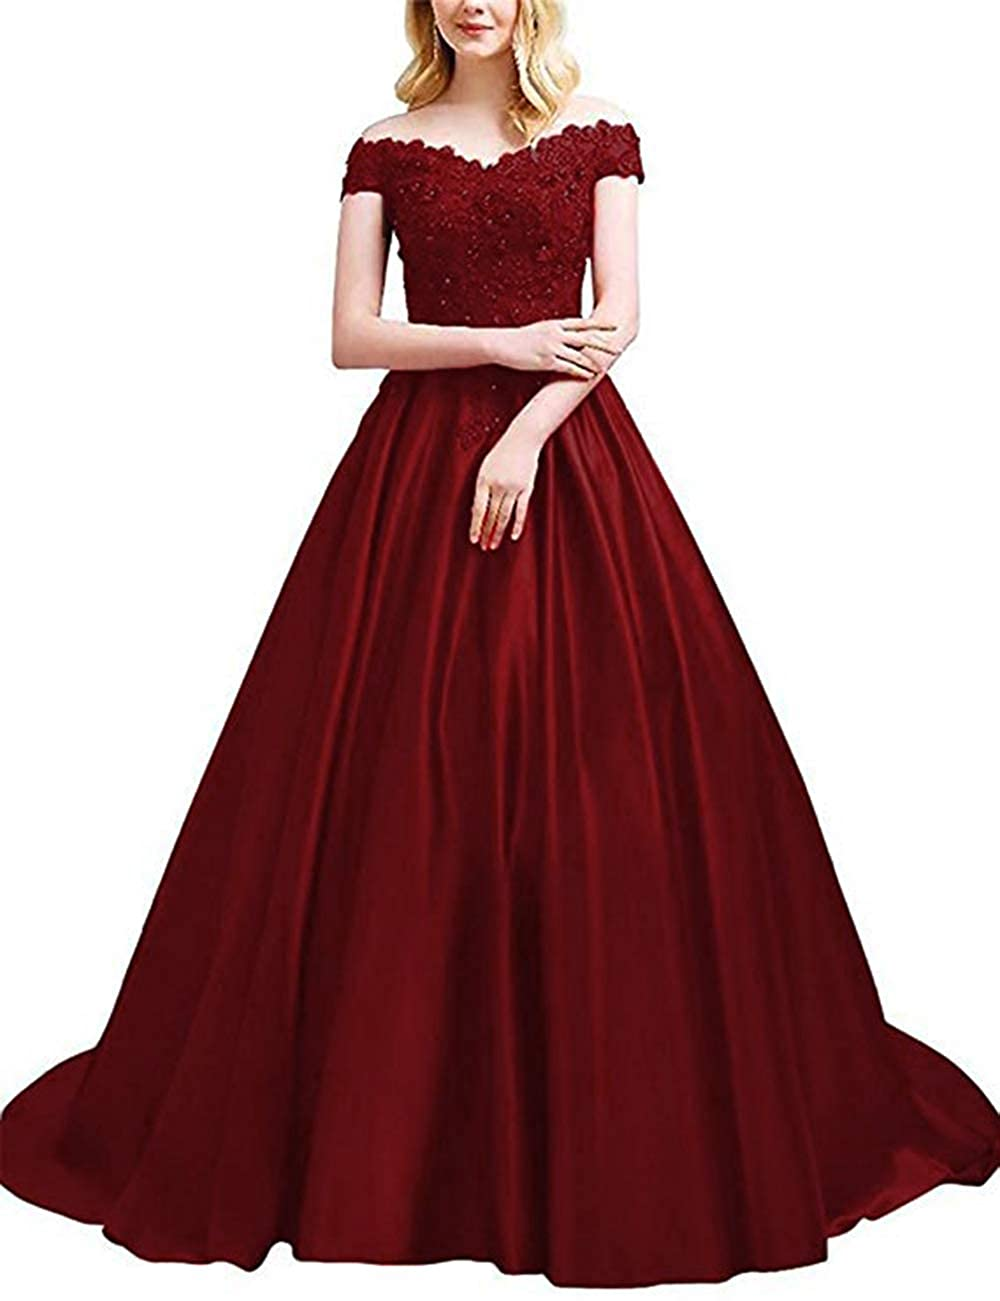 Burgundy Ri Yun Women's Off The Shoulder Prom Dresses Long Satin Beaded Formal Evening Ball Gowns 2019